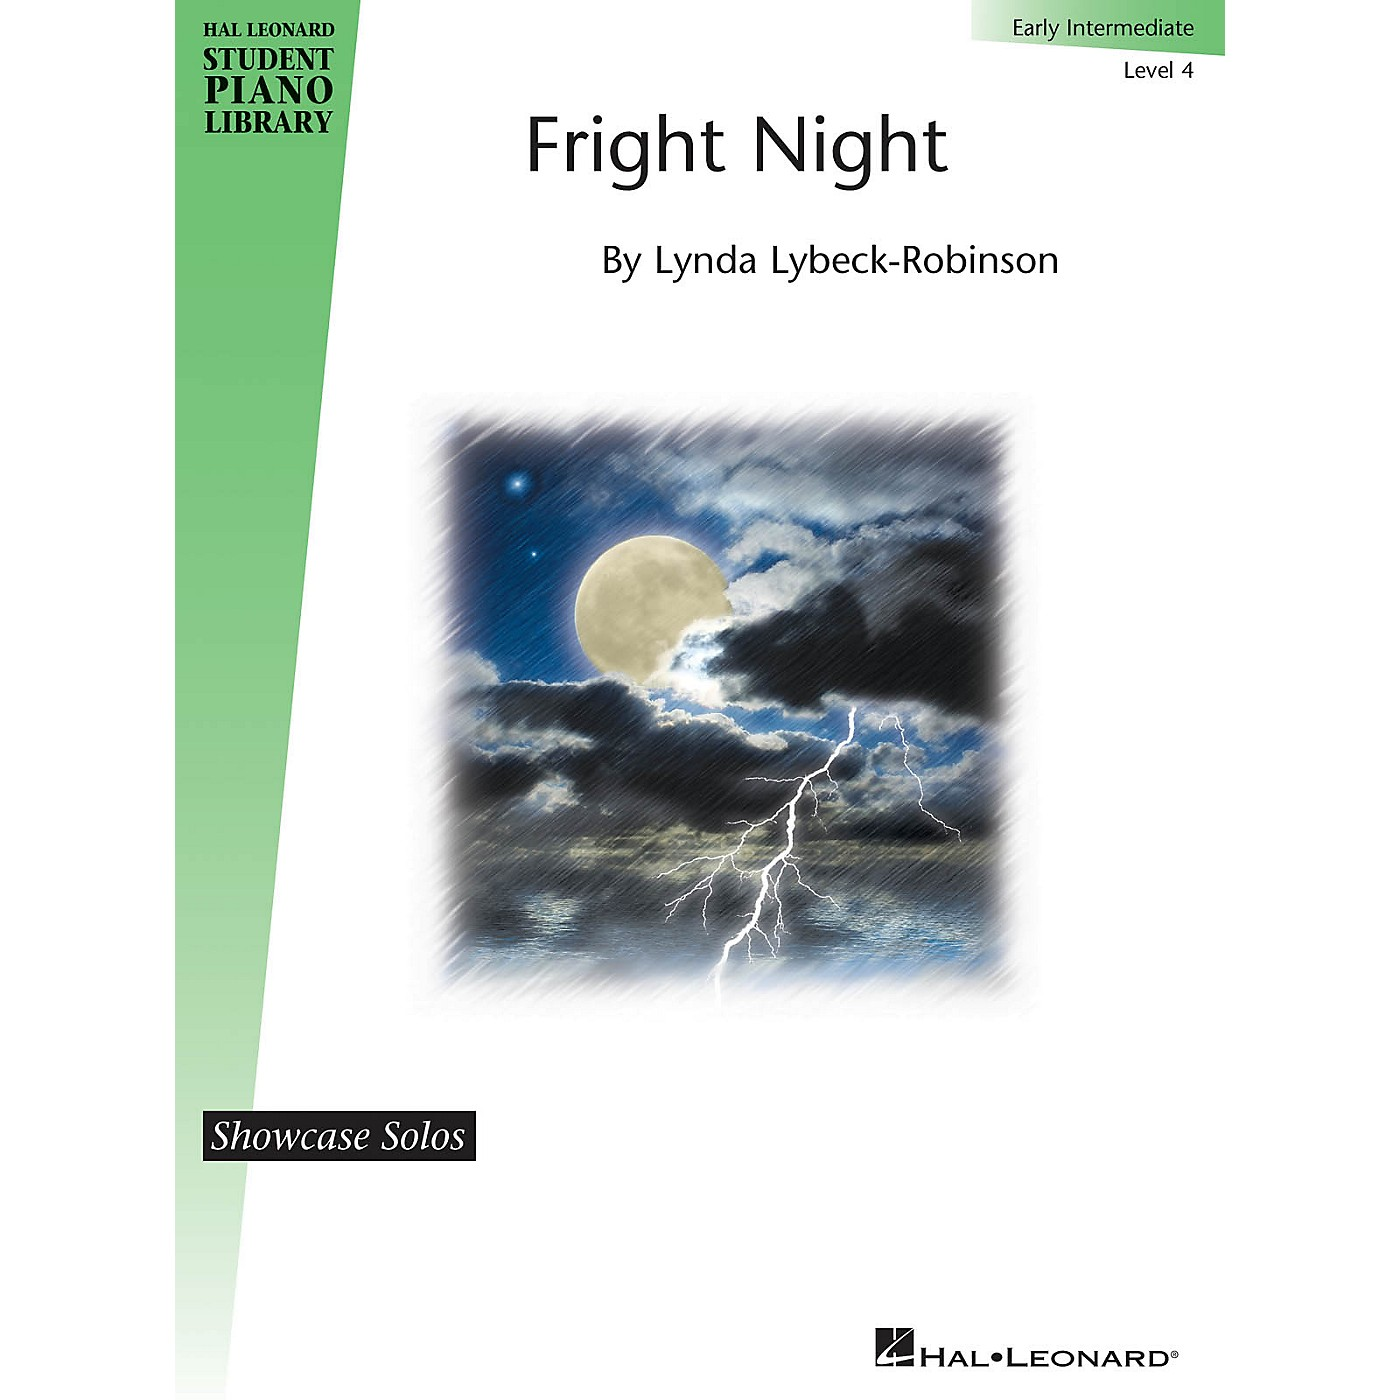 Hal Leonard Fright Night Piano Library Series by Lynda Lybeck-Robinson (Level Early Inter) thumbnail